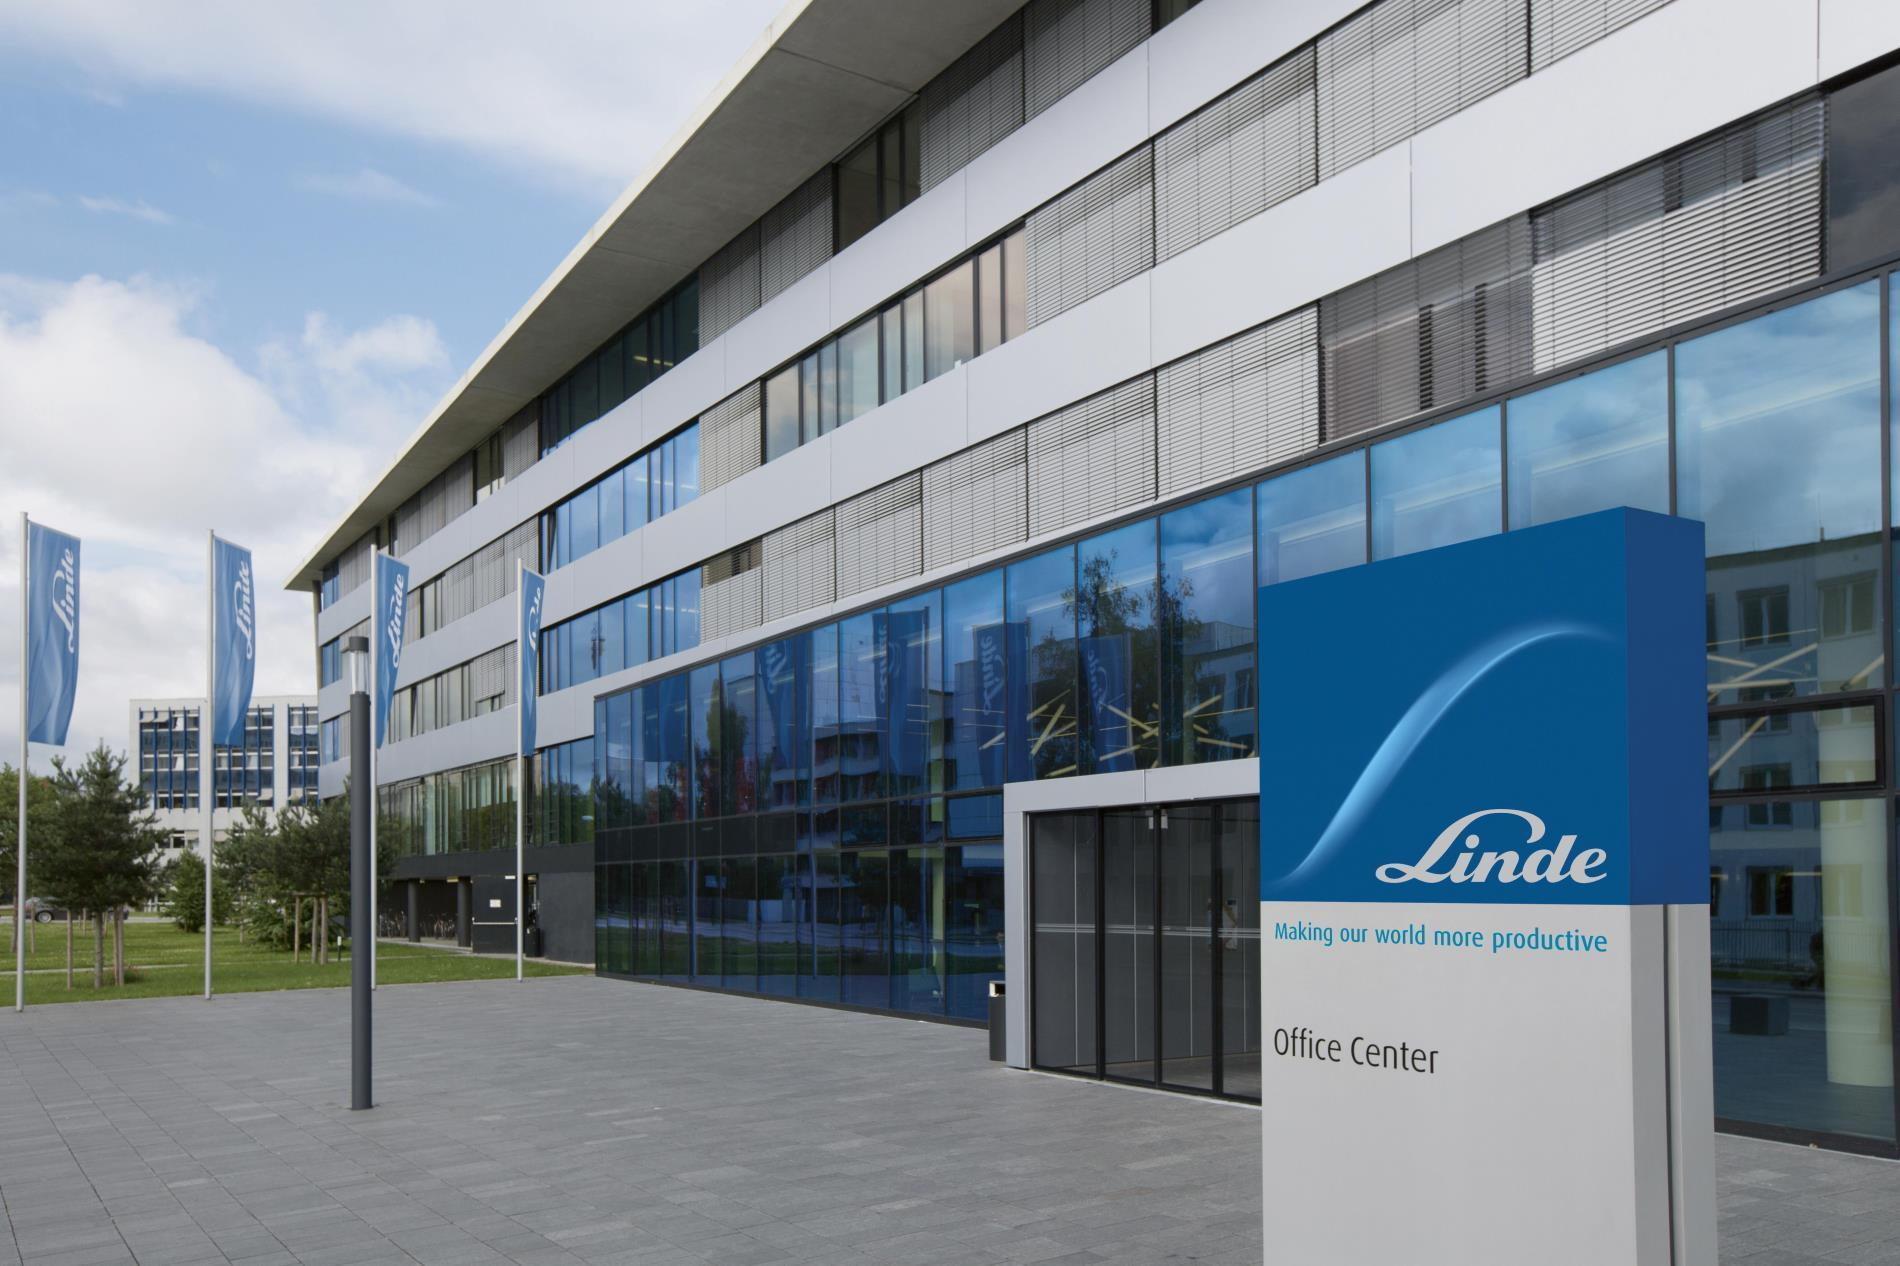 Linde Office in Pullach near Munich Germany